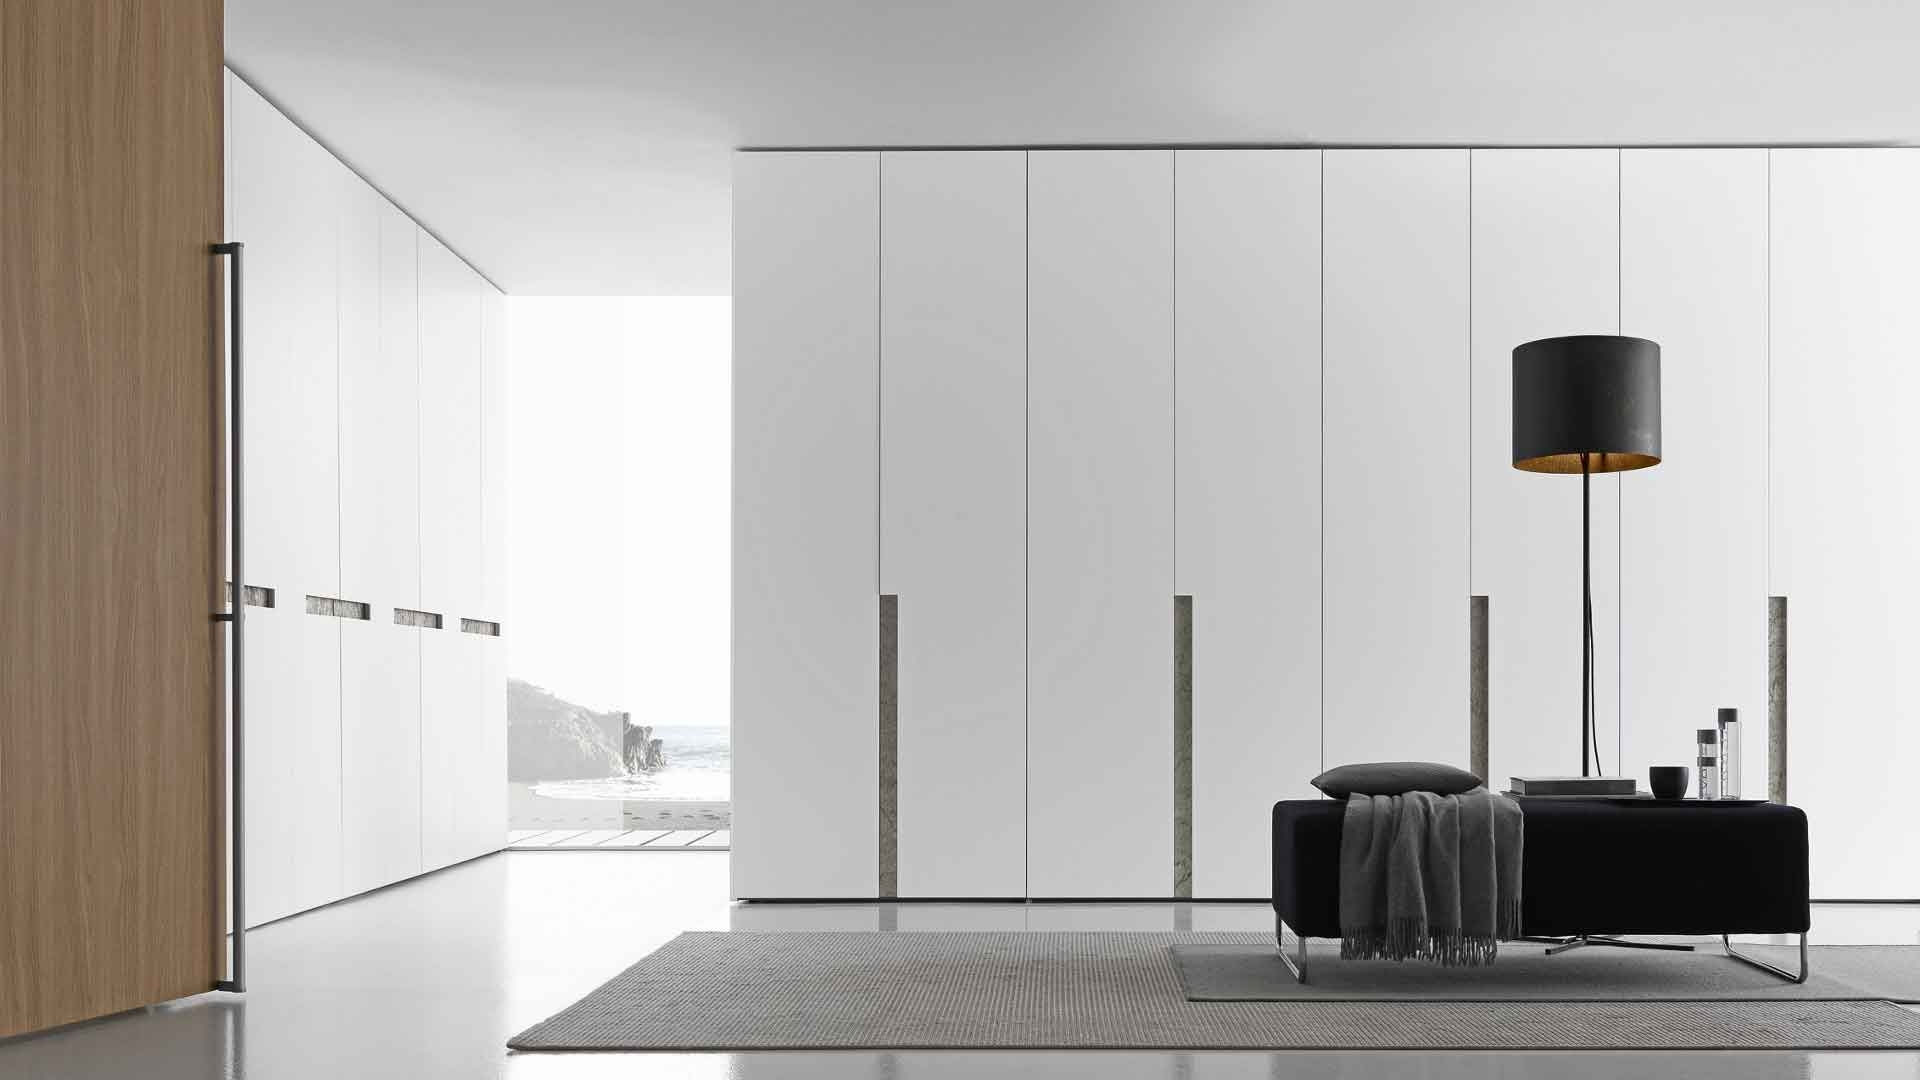 Wardrobe With Matt Bianco Candido Lacquered Alibi Swing Doors And With Regard To Cupboard Inserts For Wardrobes (Image 23 of 25)